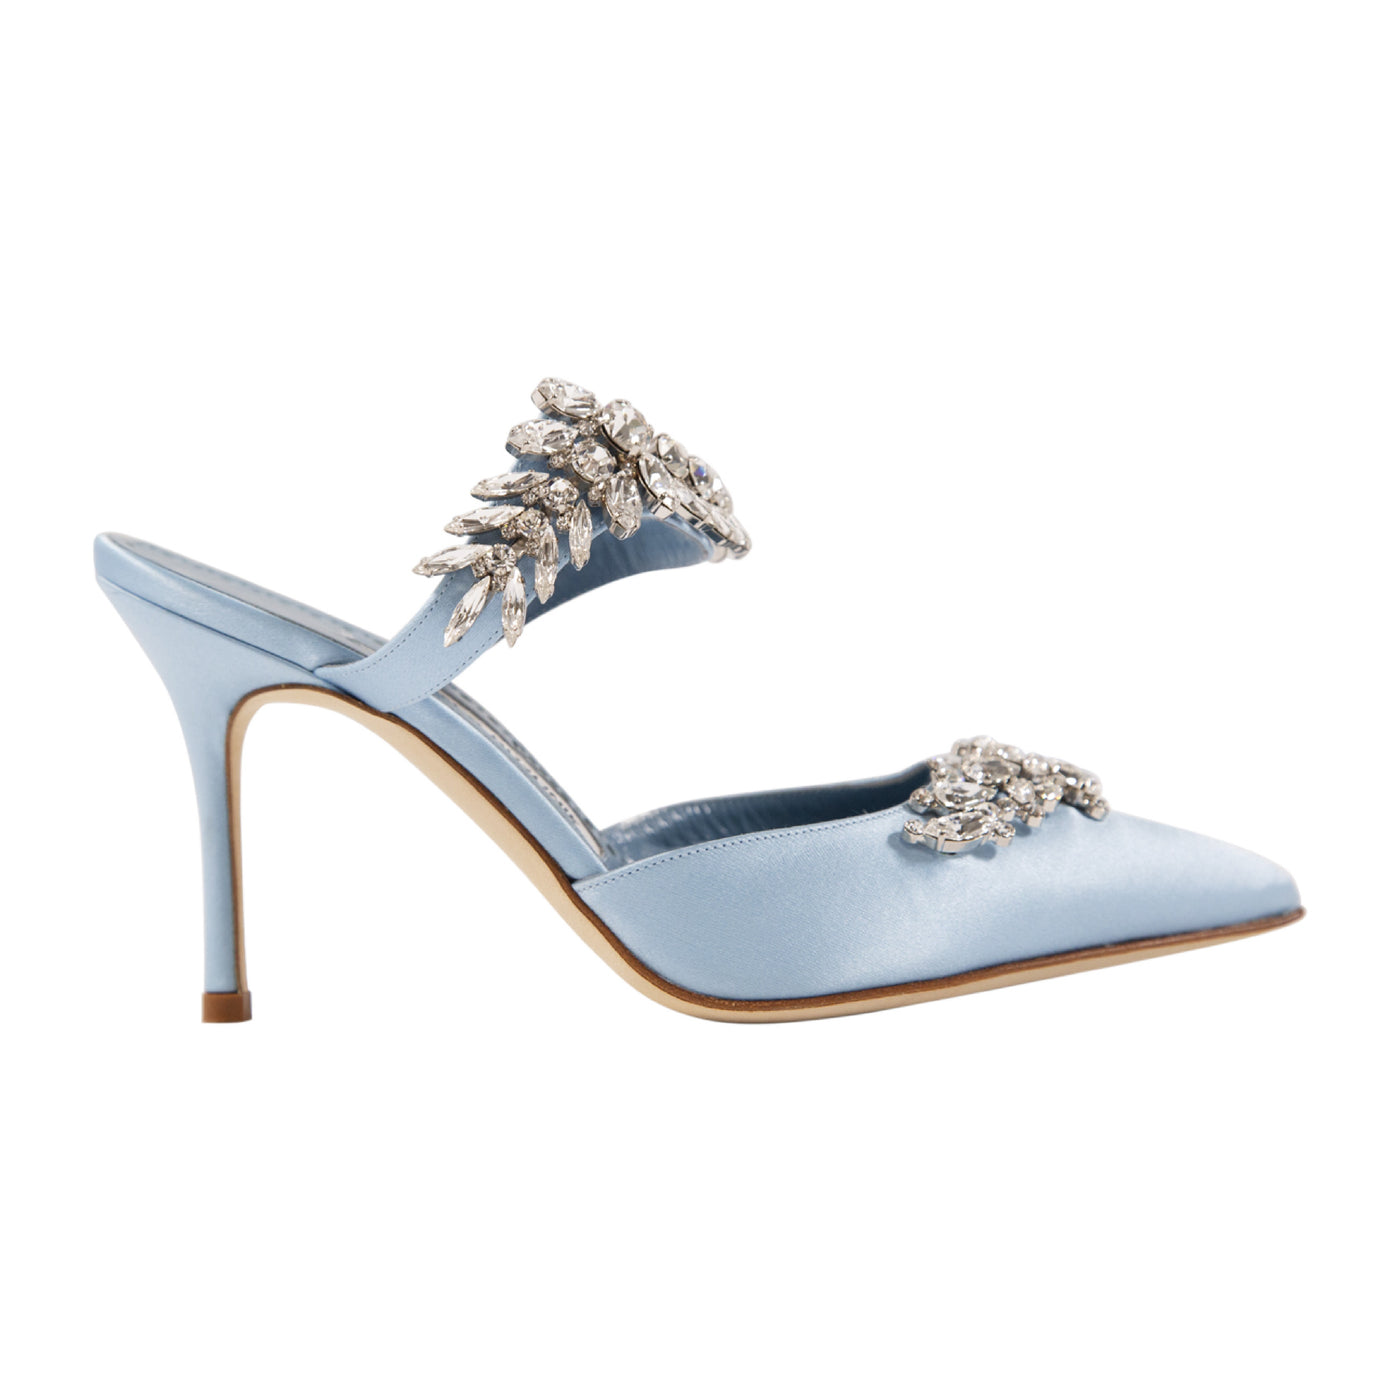 Load image into Gallery viewer, MANOLO BLAHNIK CRYSTAL-EMBELLISHED MULES BLUE